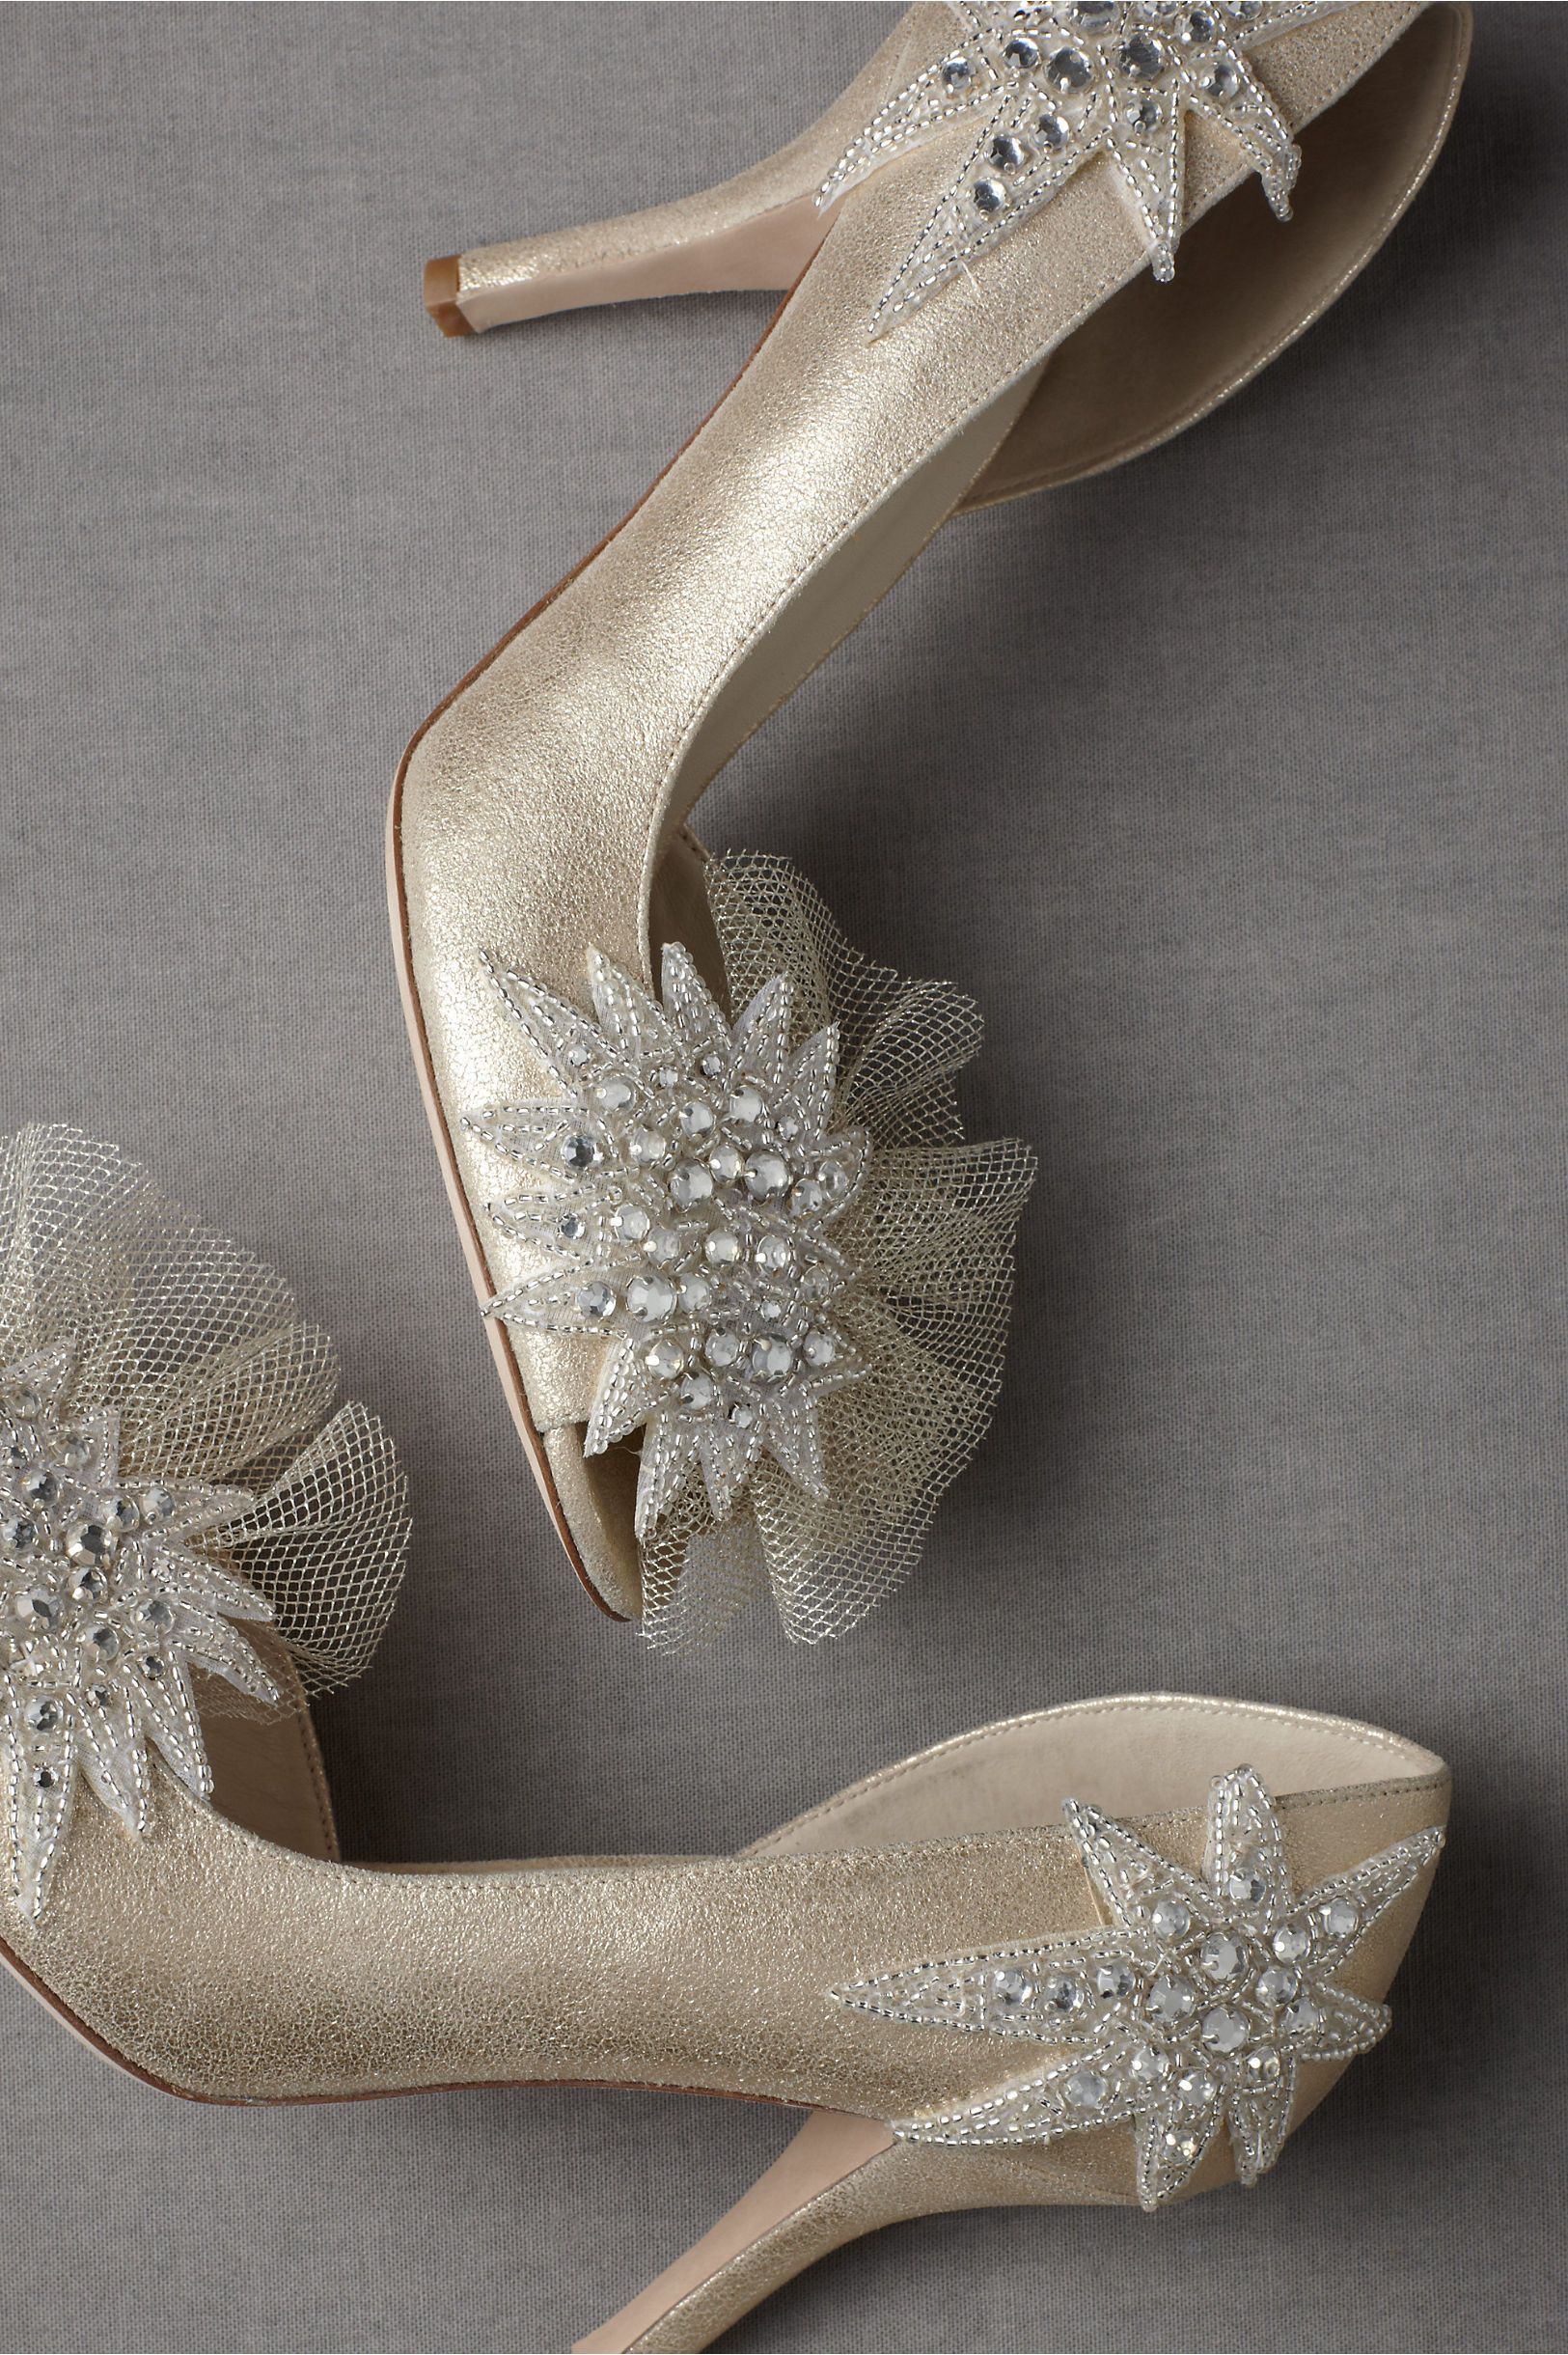 Spirit-Of-The-Moment Heels from BHLDN